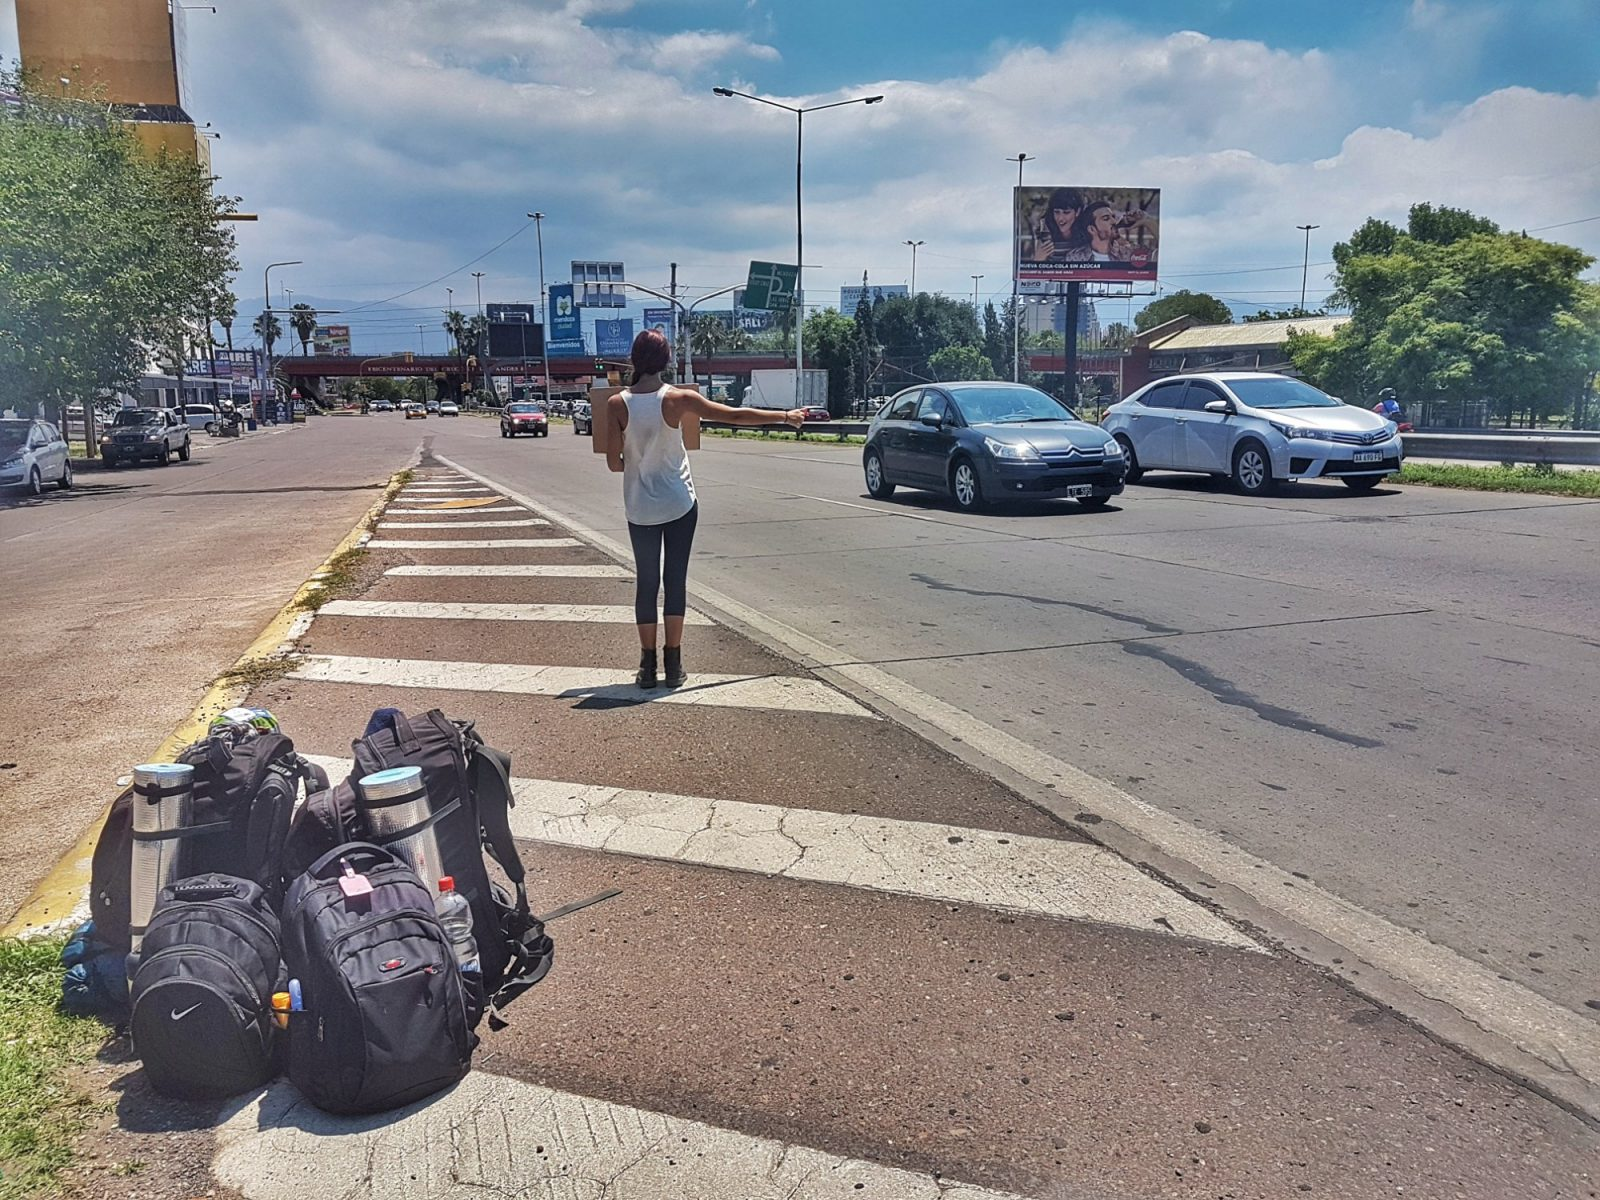 "<img src=""images/"" width=""800"" height=""600"" alt=""mendoza to cordoba - 20180115 141401 01881856856 - Argentina: How We Hitchhiked from Mendoza to Cordoba "">"